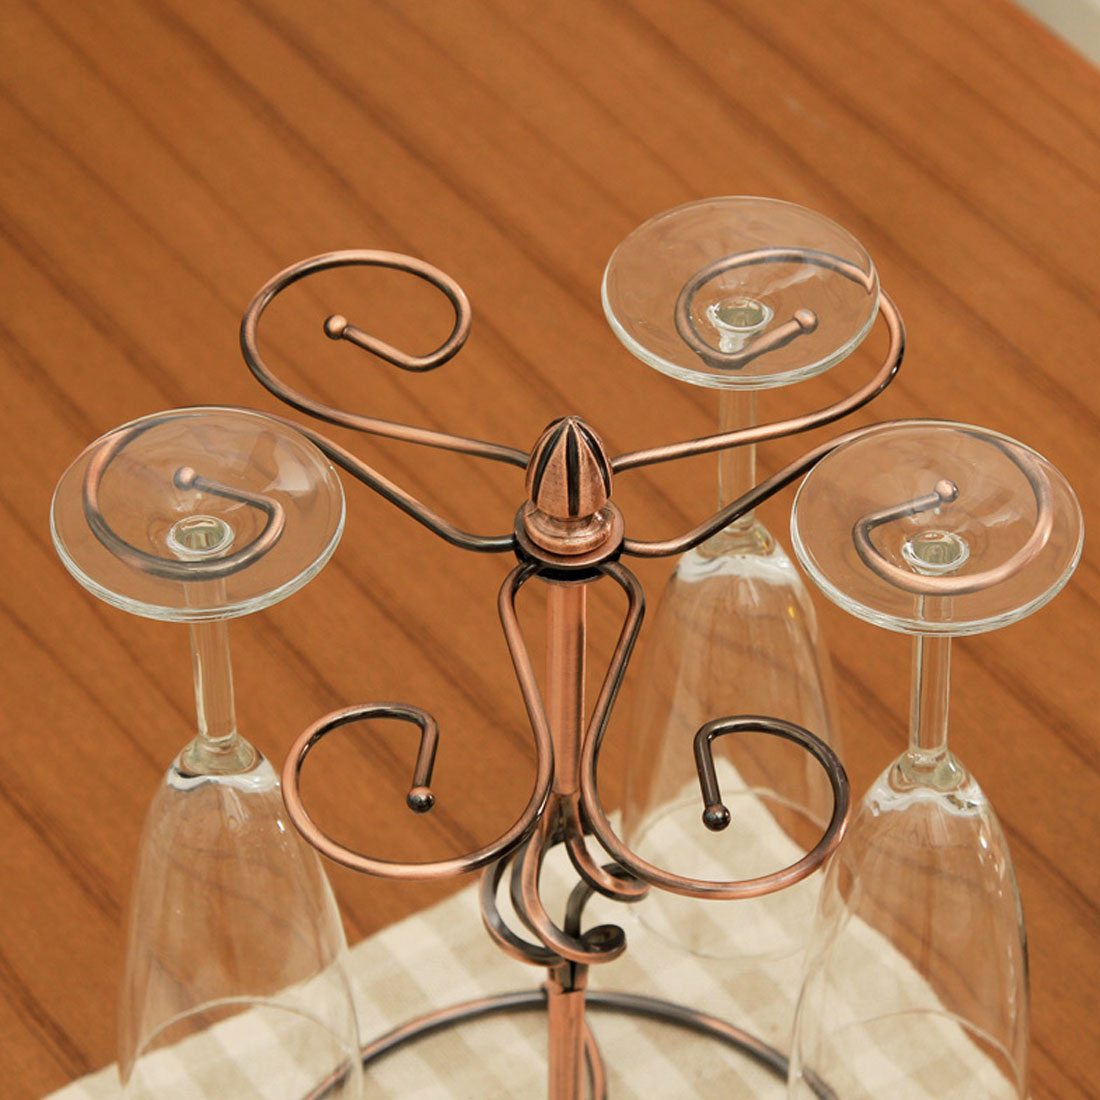 Metal Tabletop 6 Wine Glass Drying Rack Ring Display Stand Champagne Color 3